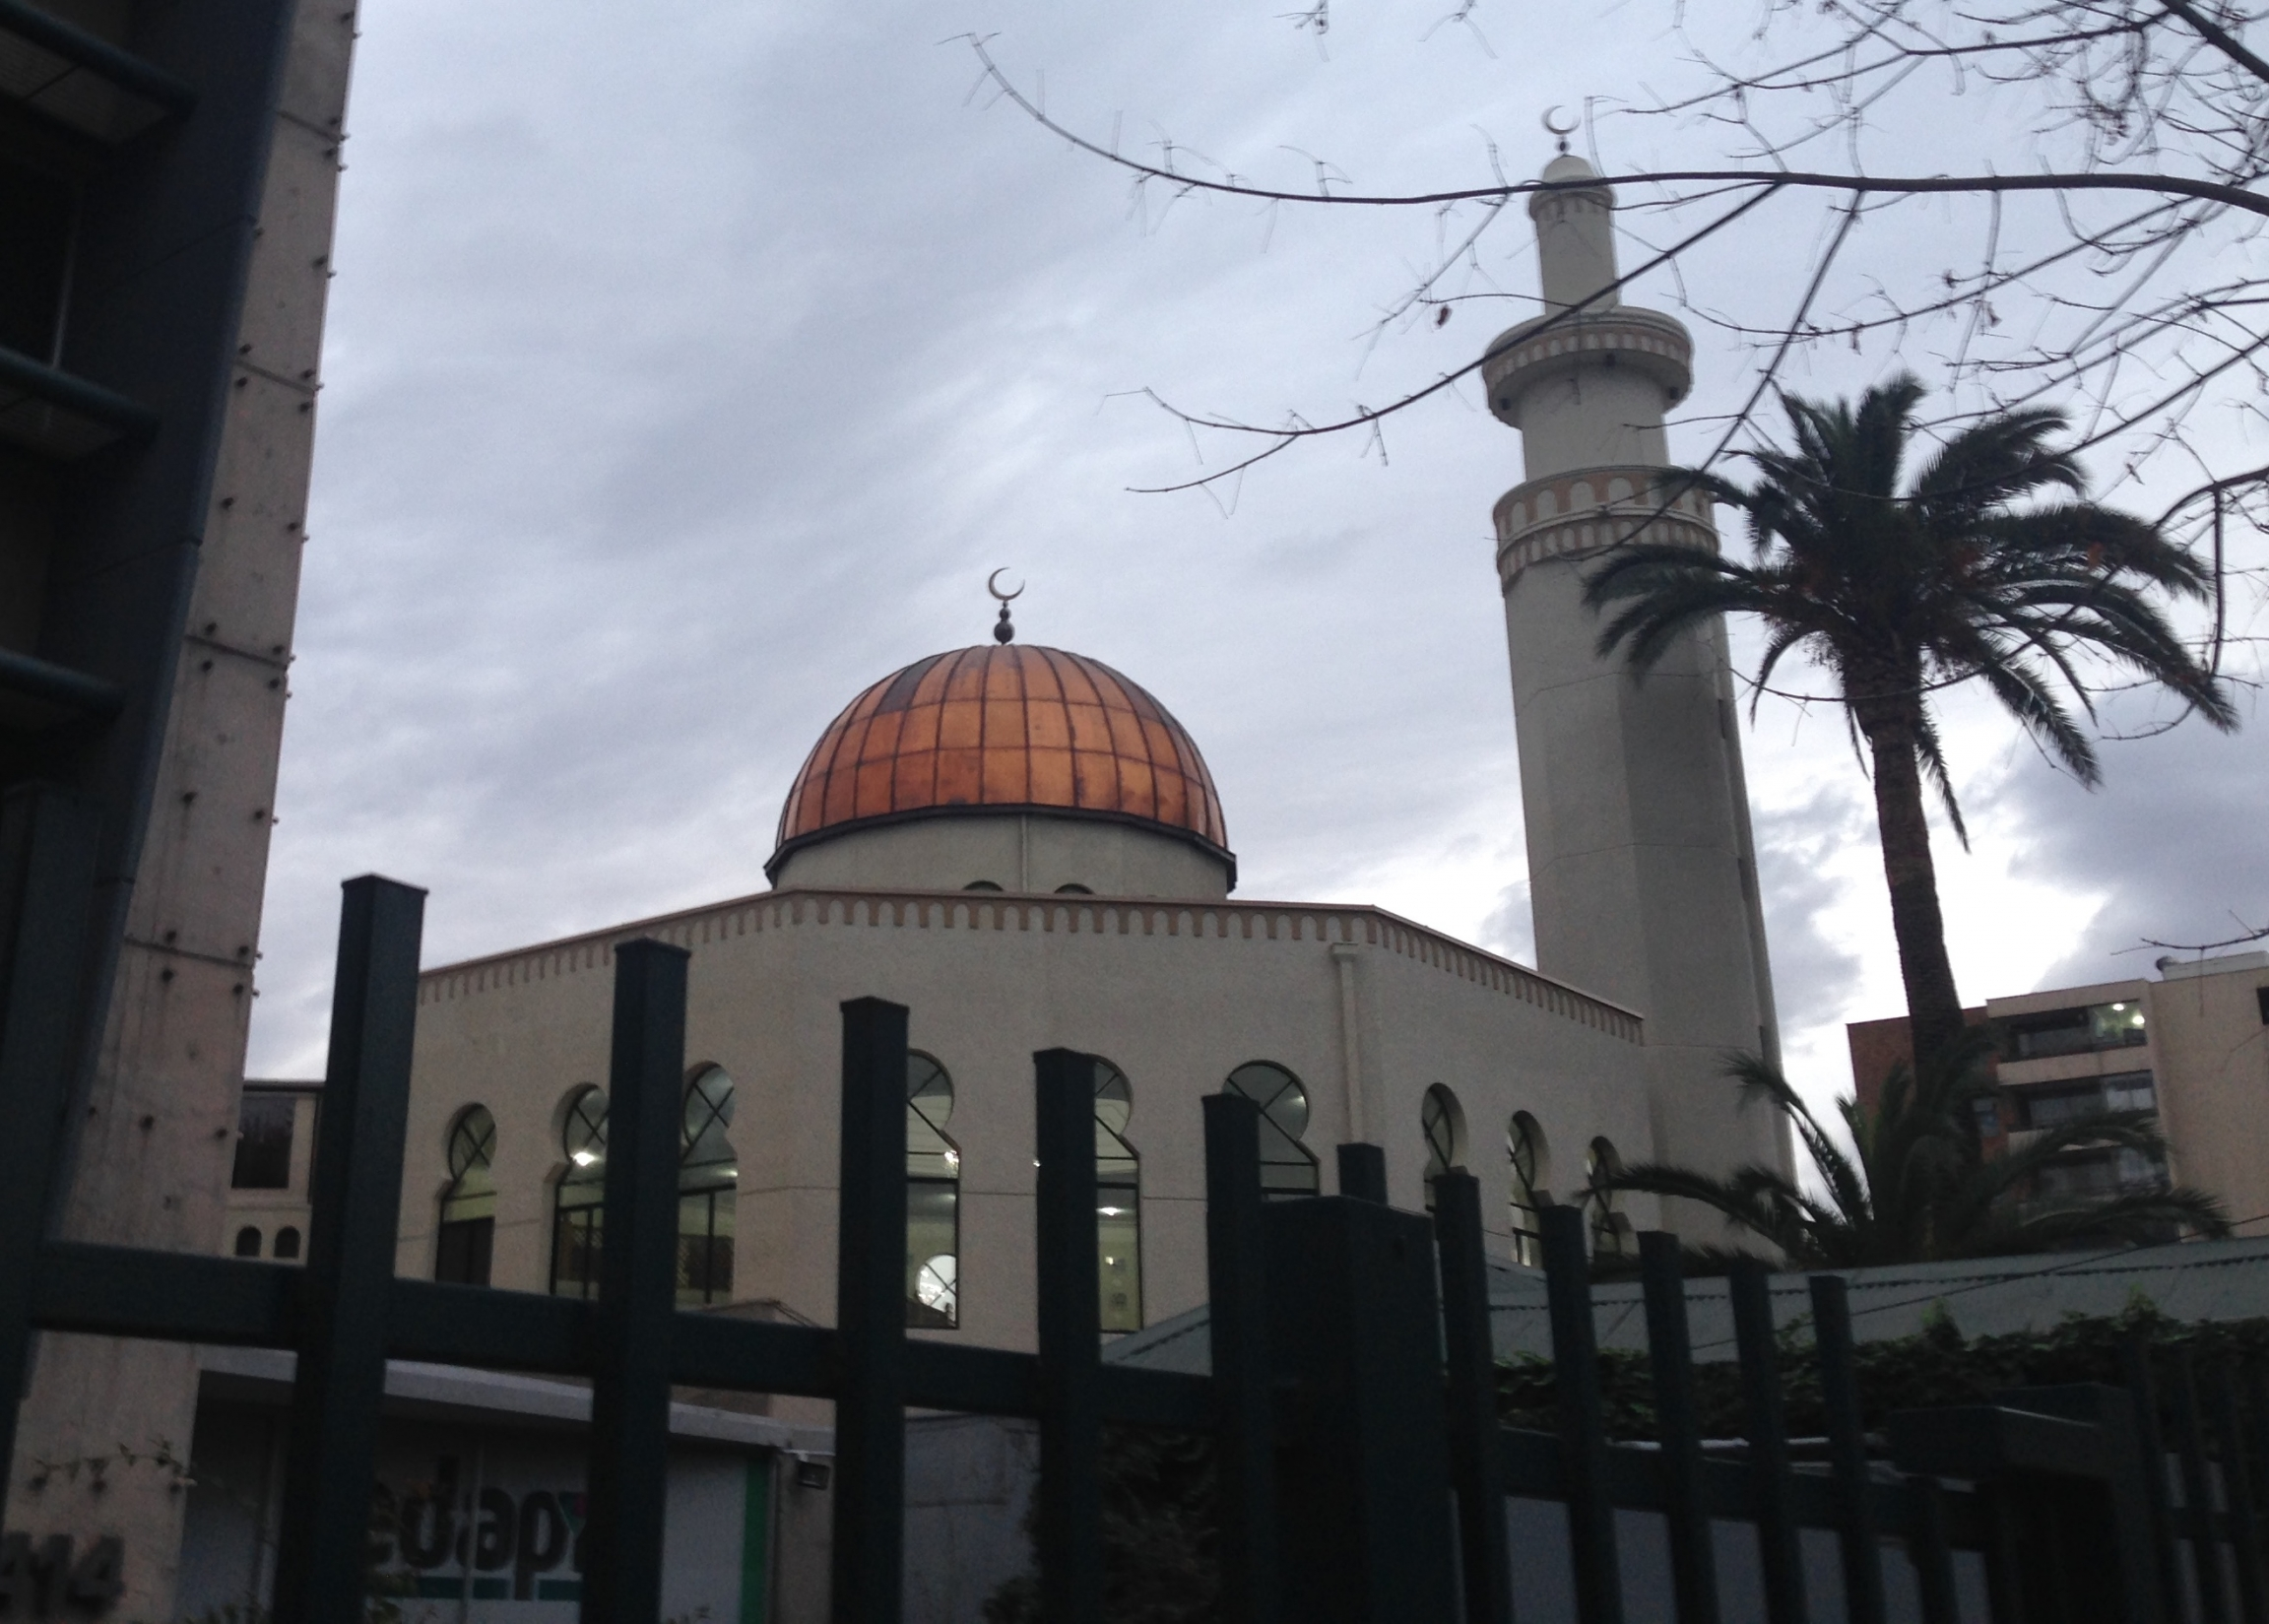 Exterior of the Mezquita as-Salaam mosque in Santiago, Chile, with a dome, minaret and palm tree